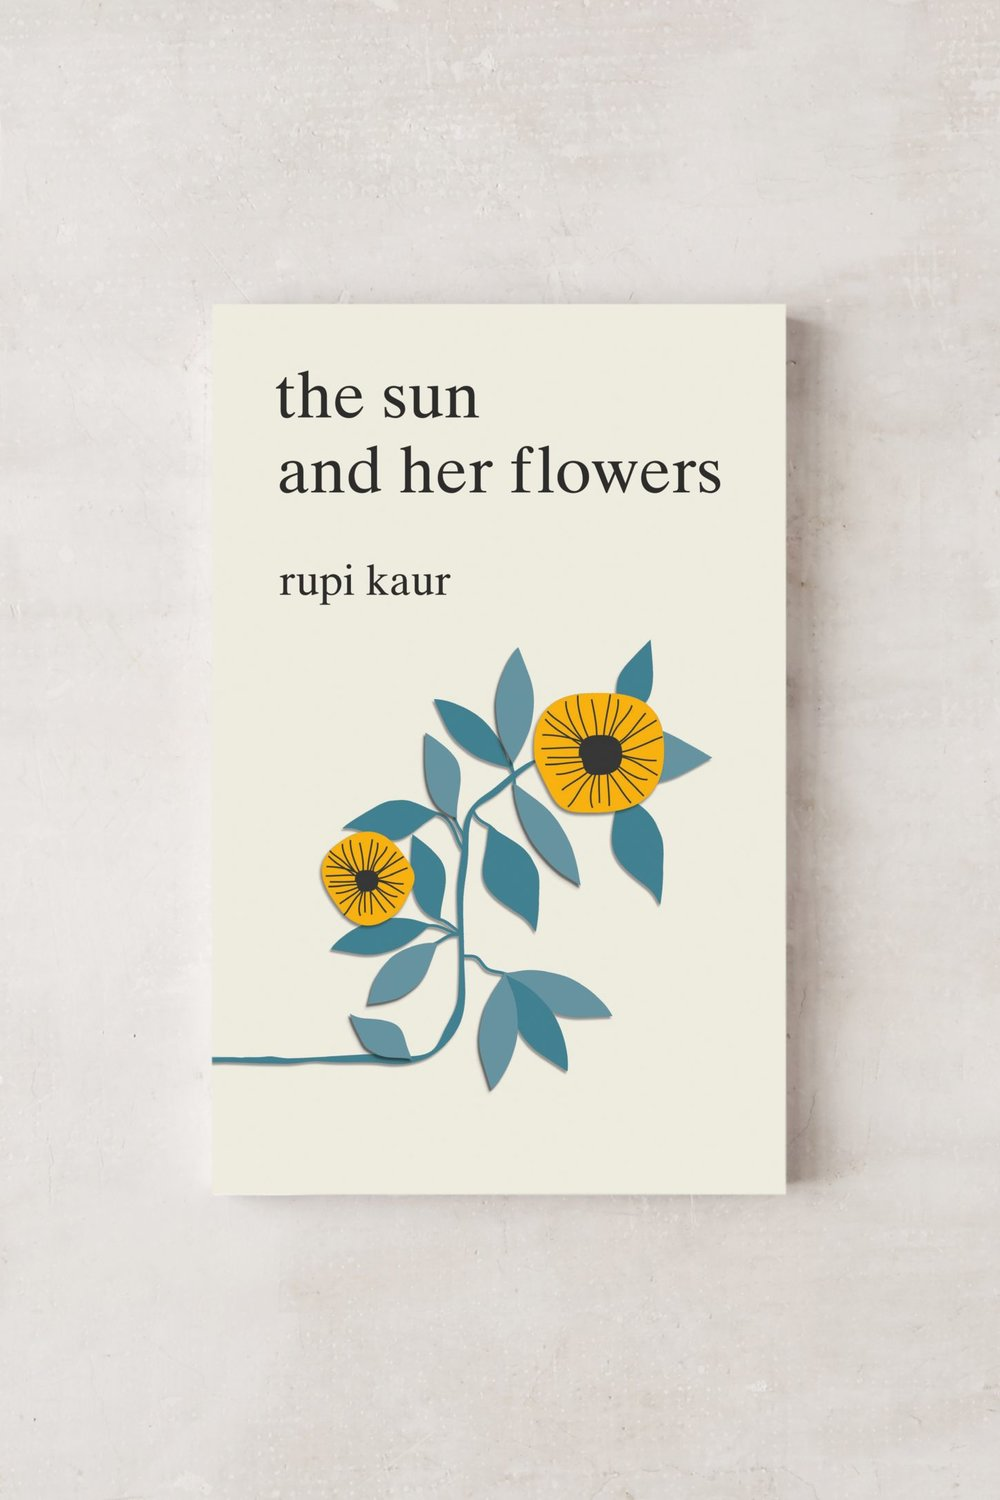 The Sun and her flowers by Rupi Kaur $19.99 -